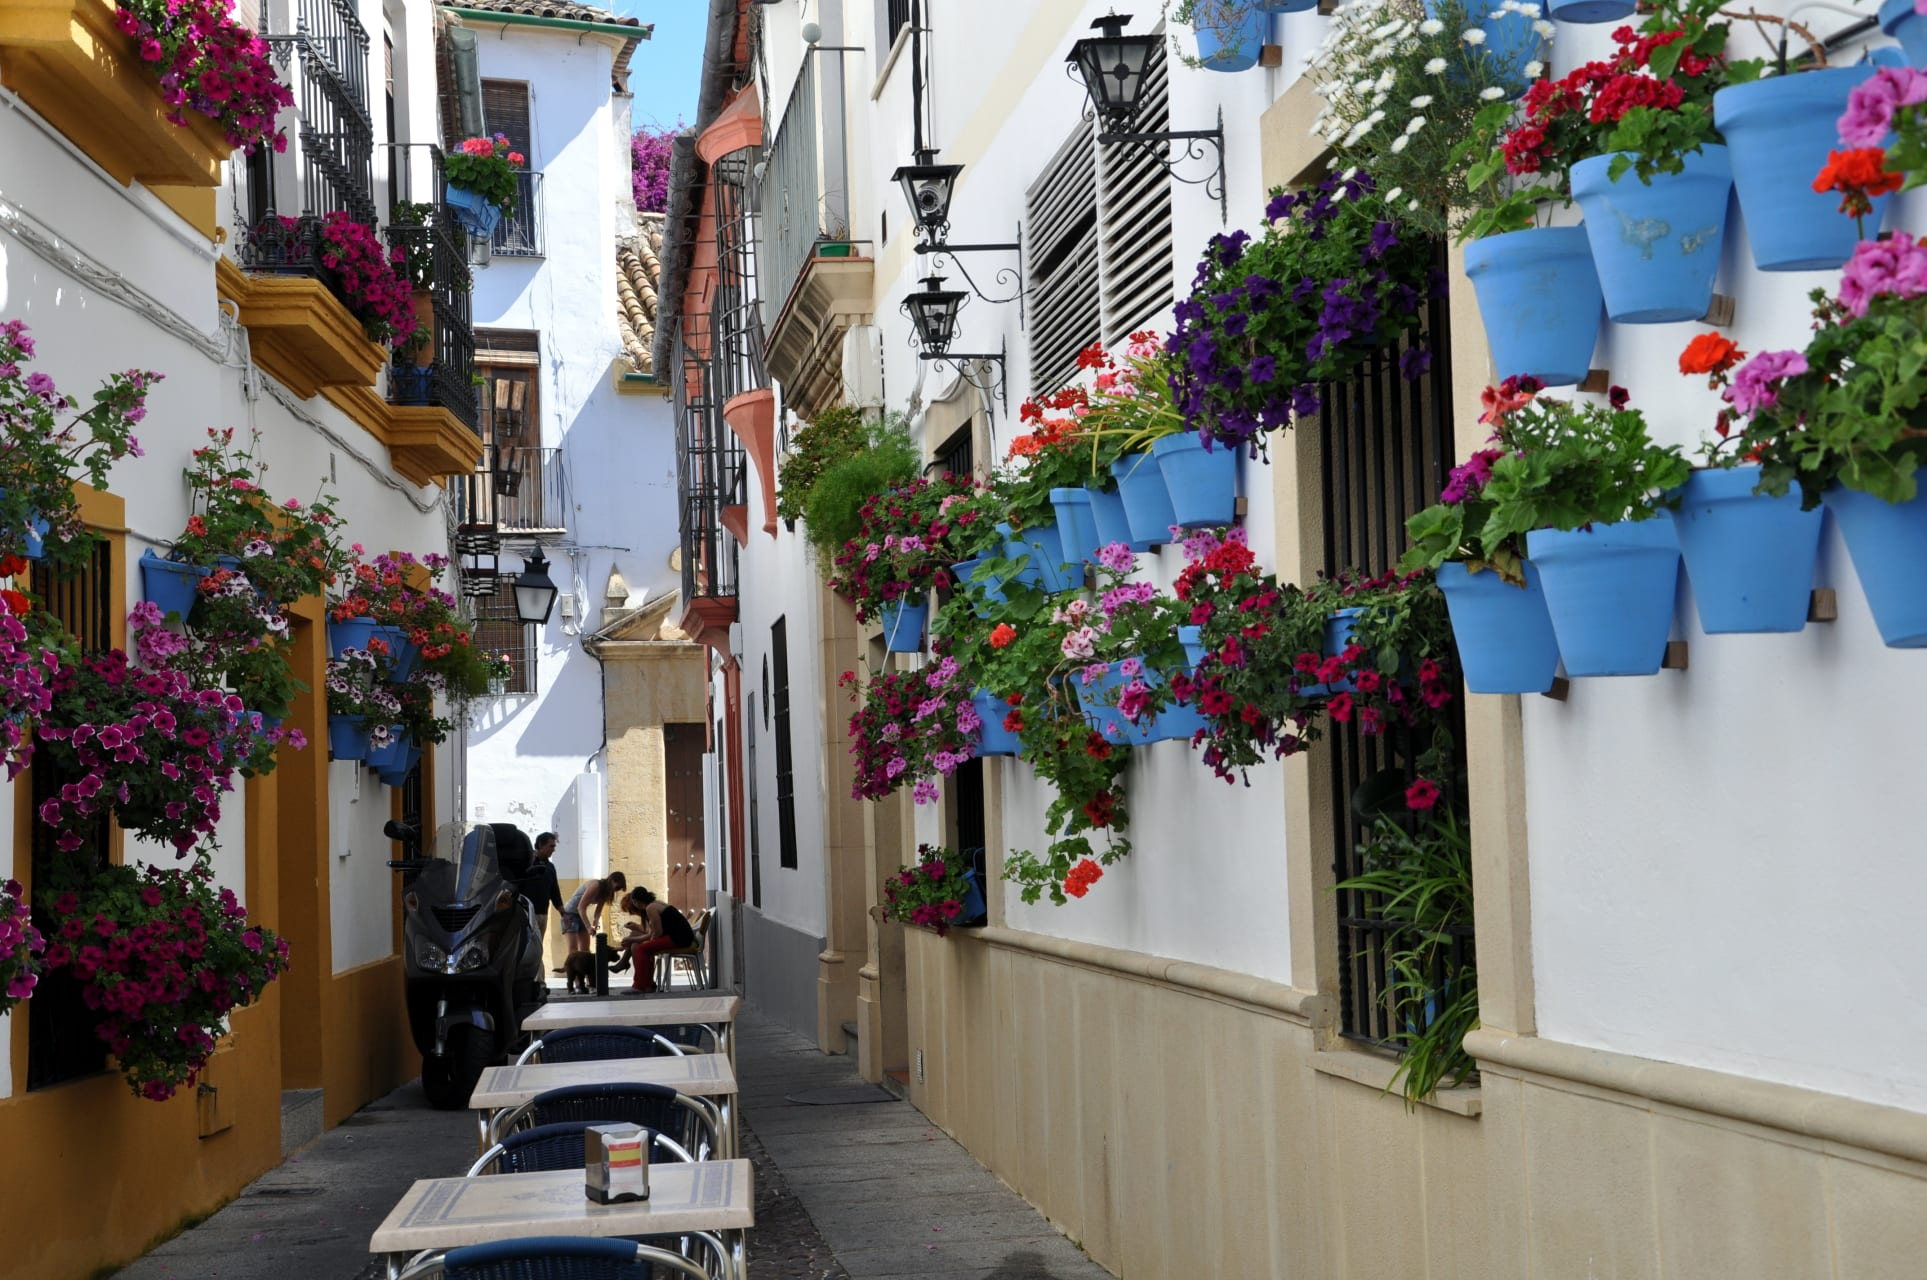 Seville - Narrow Streets, Dreamy Patios and Balconies of Seville